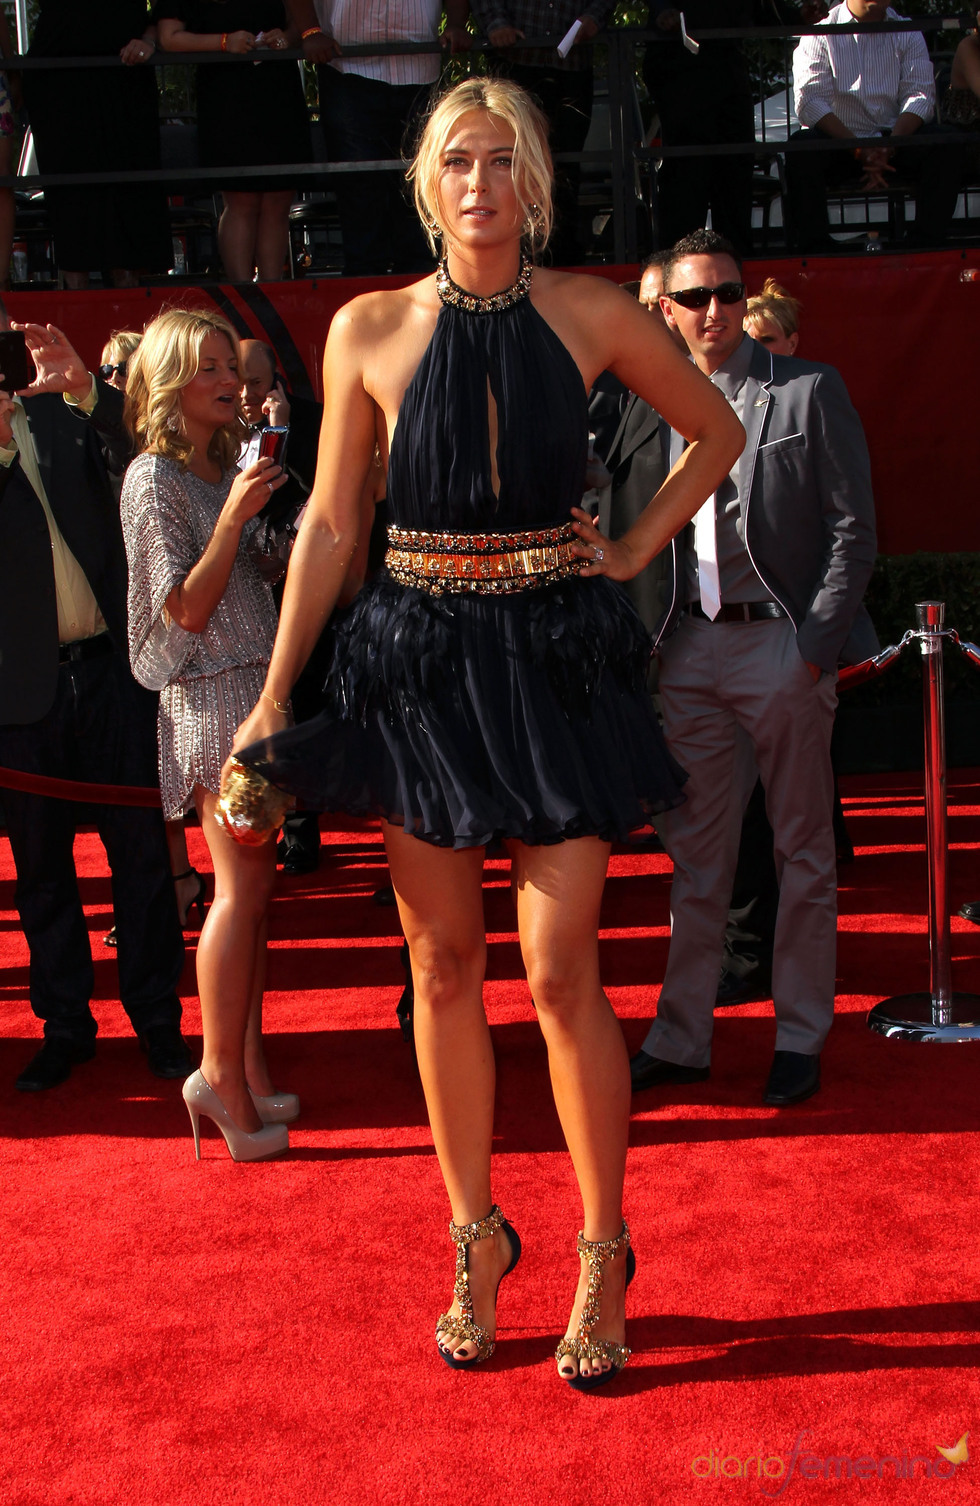 Maria Sharapova en los ESPY Awards de 2011